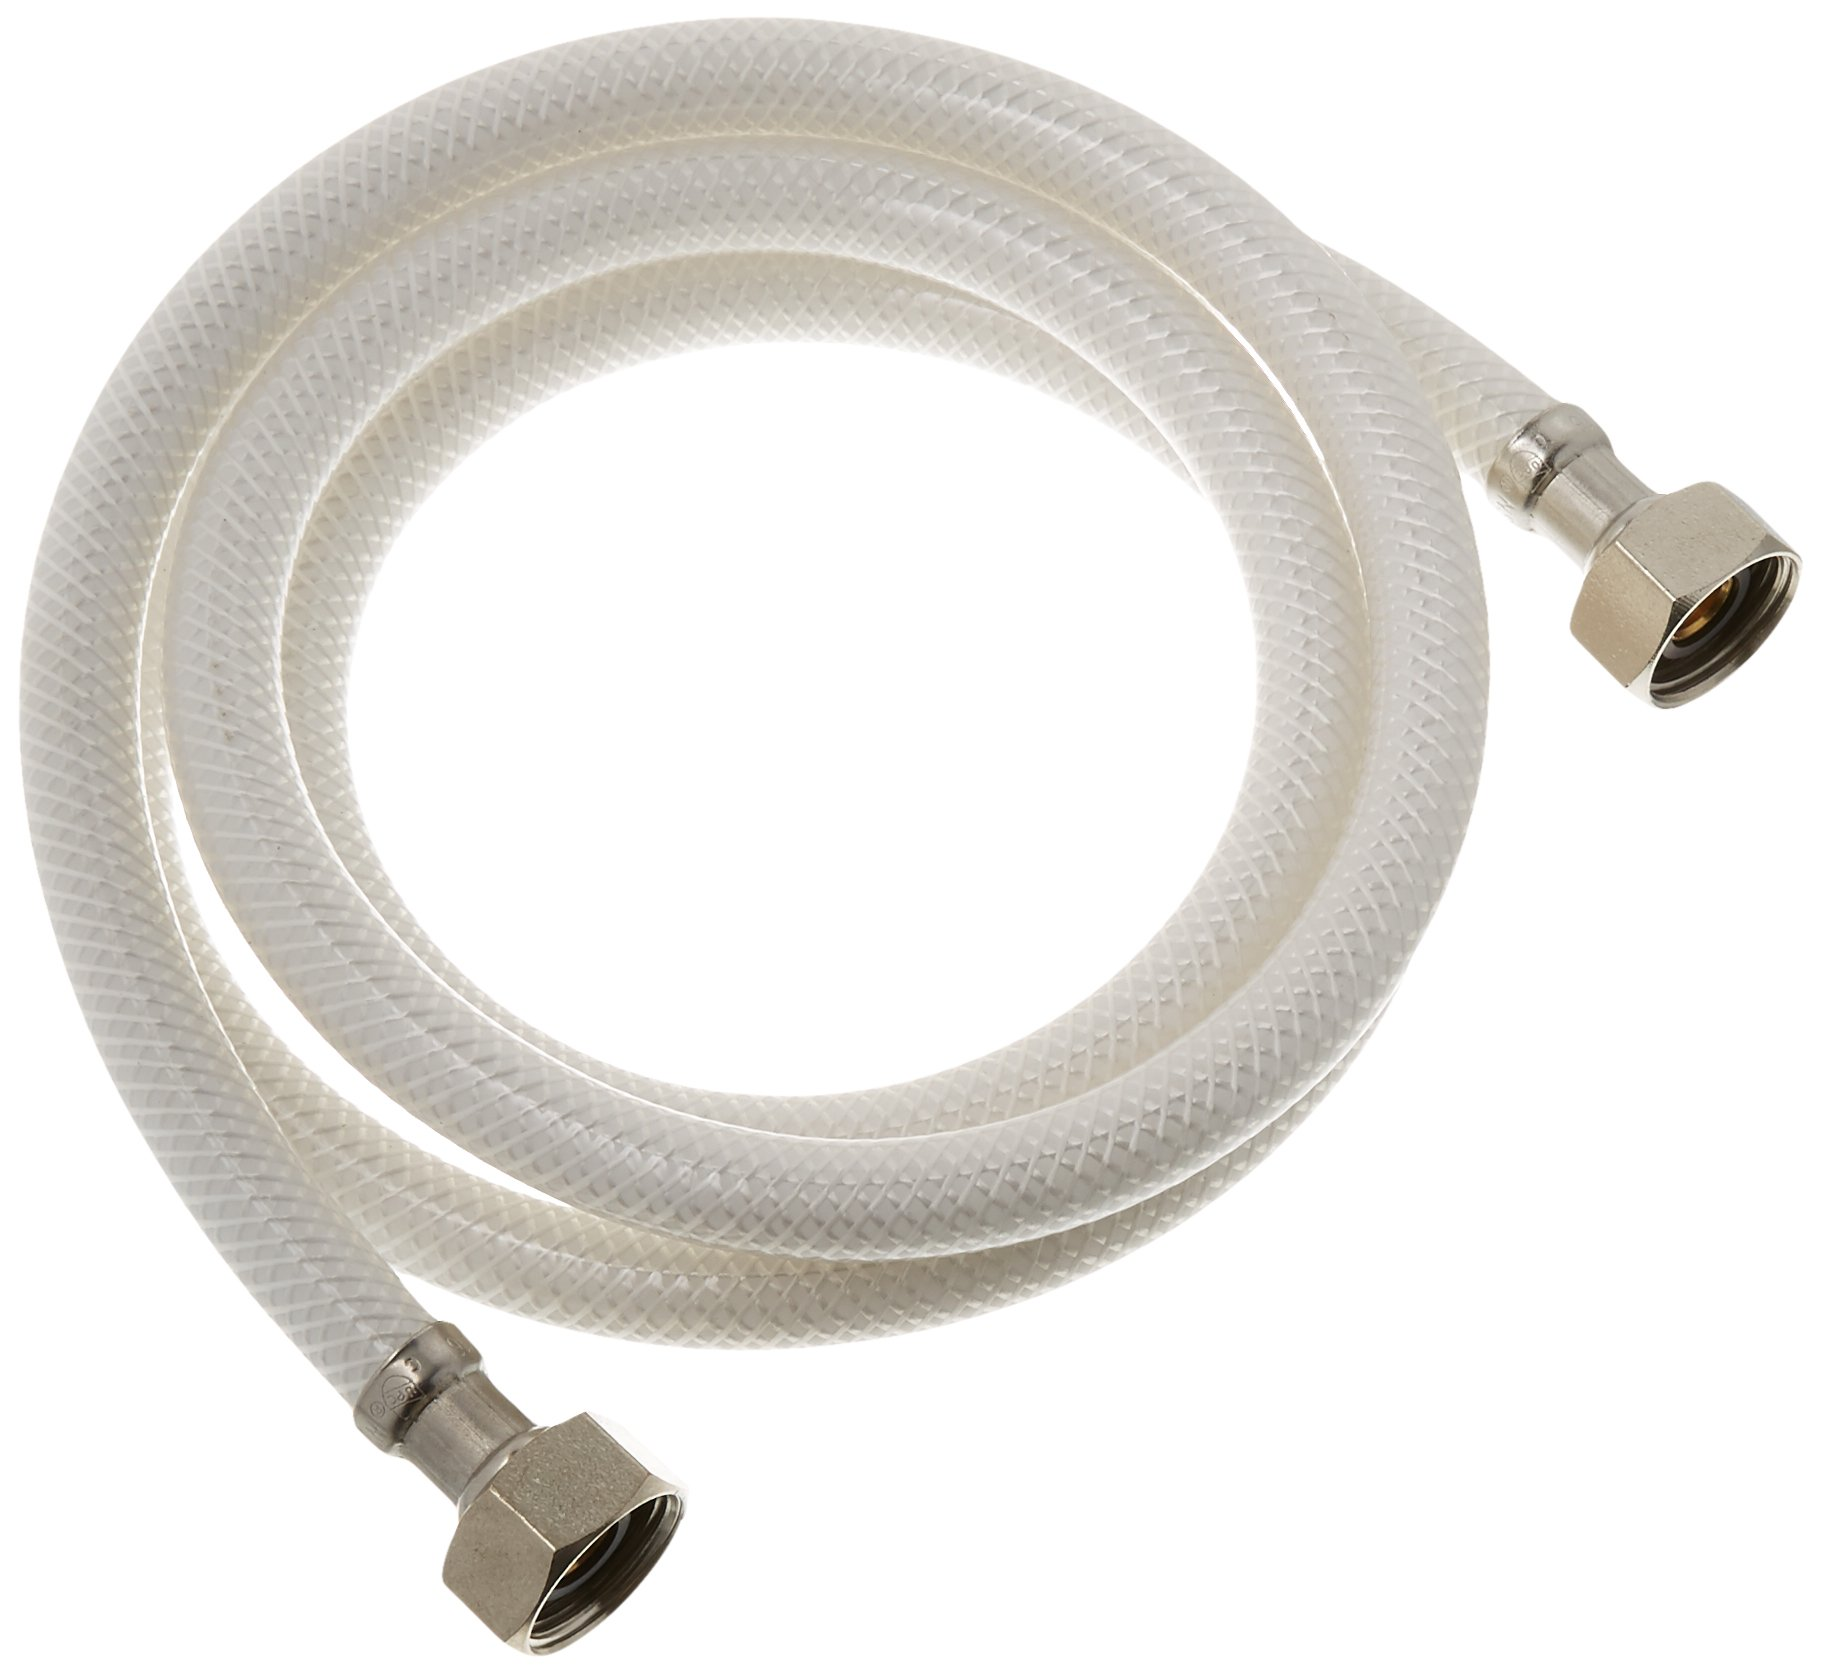 LASCO 10-2461 1/2-Inch IPS by 1/2-Inch IPS by 60-Inch Plastic Supply Flex Hose Connector by LASCO (Image #1)